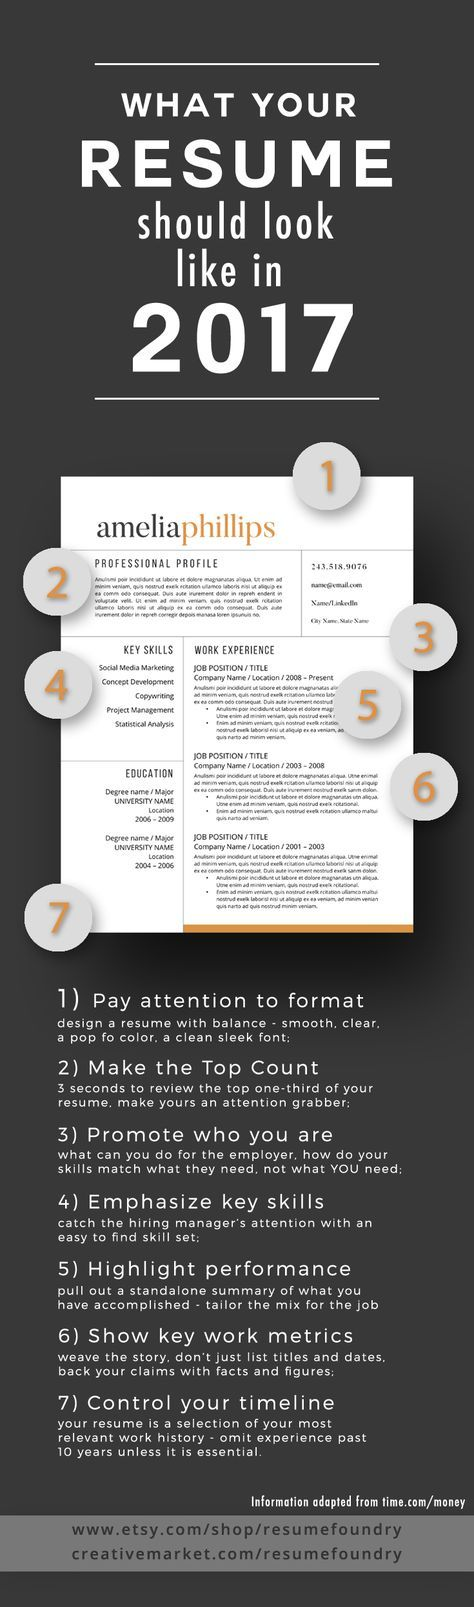 7 tips to transform your resume to 2017 Check out the article at